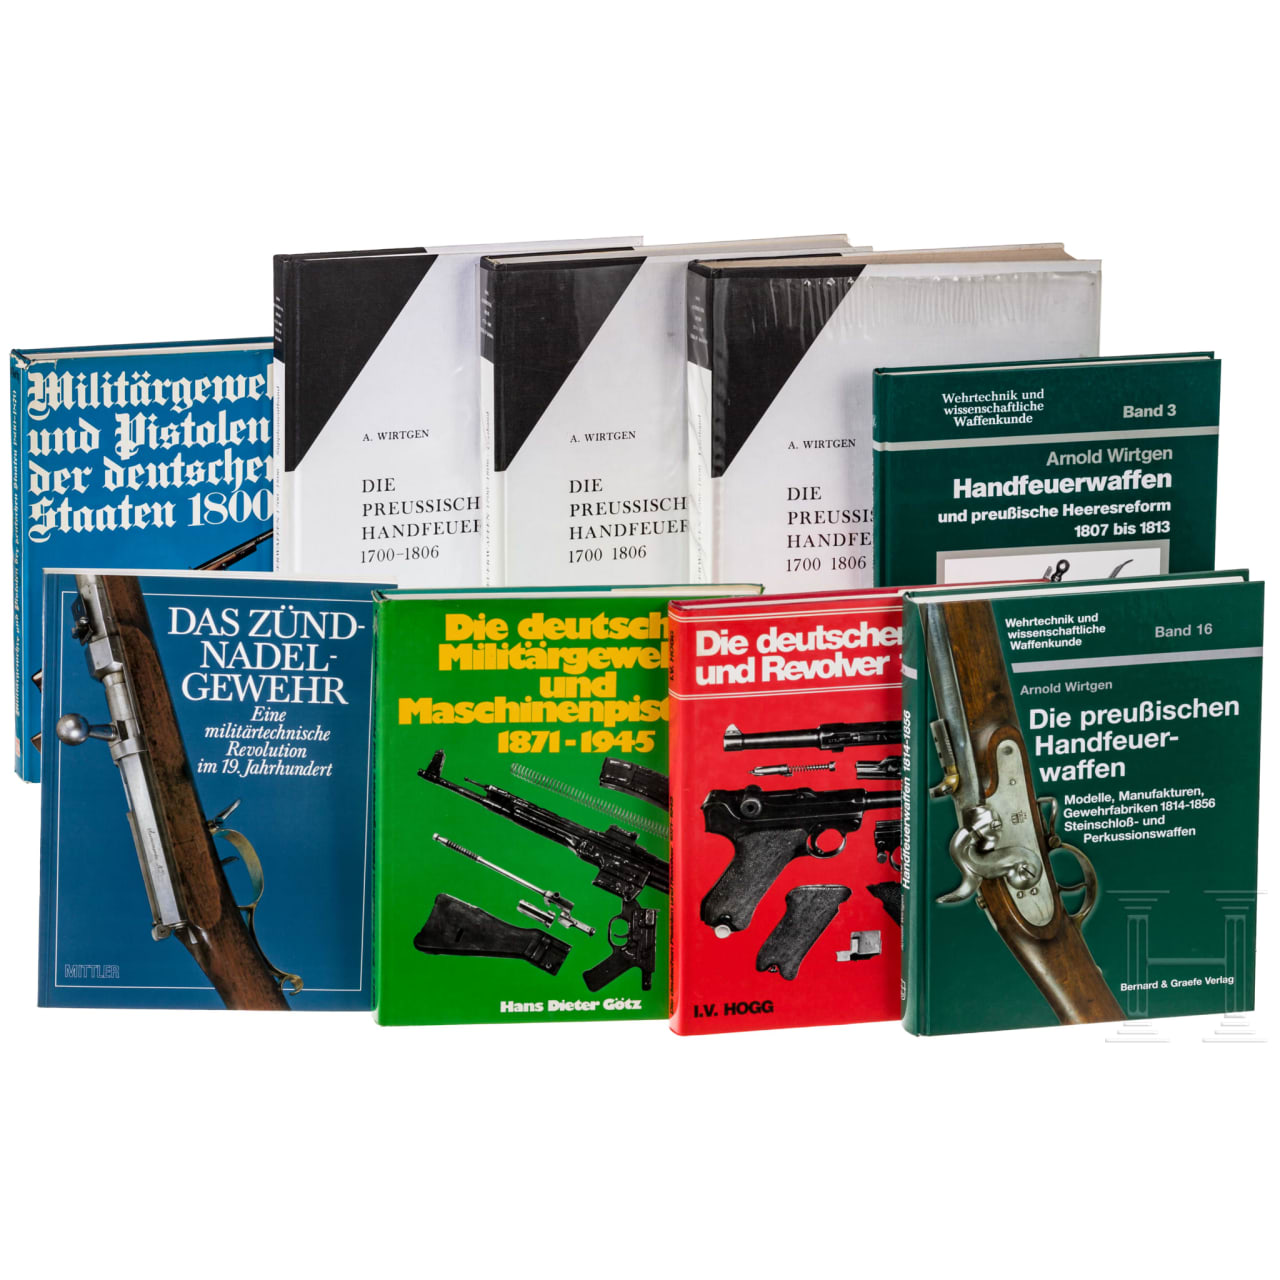 Nine books on German military firearms